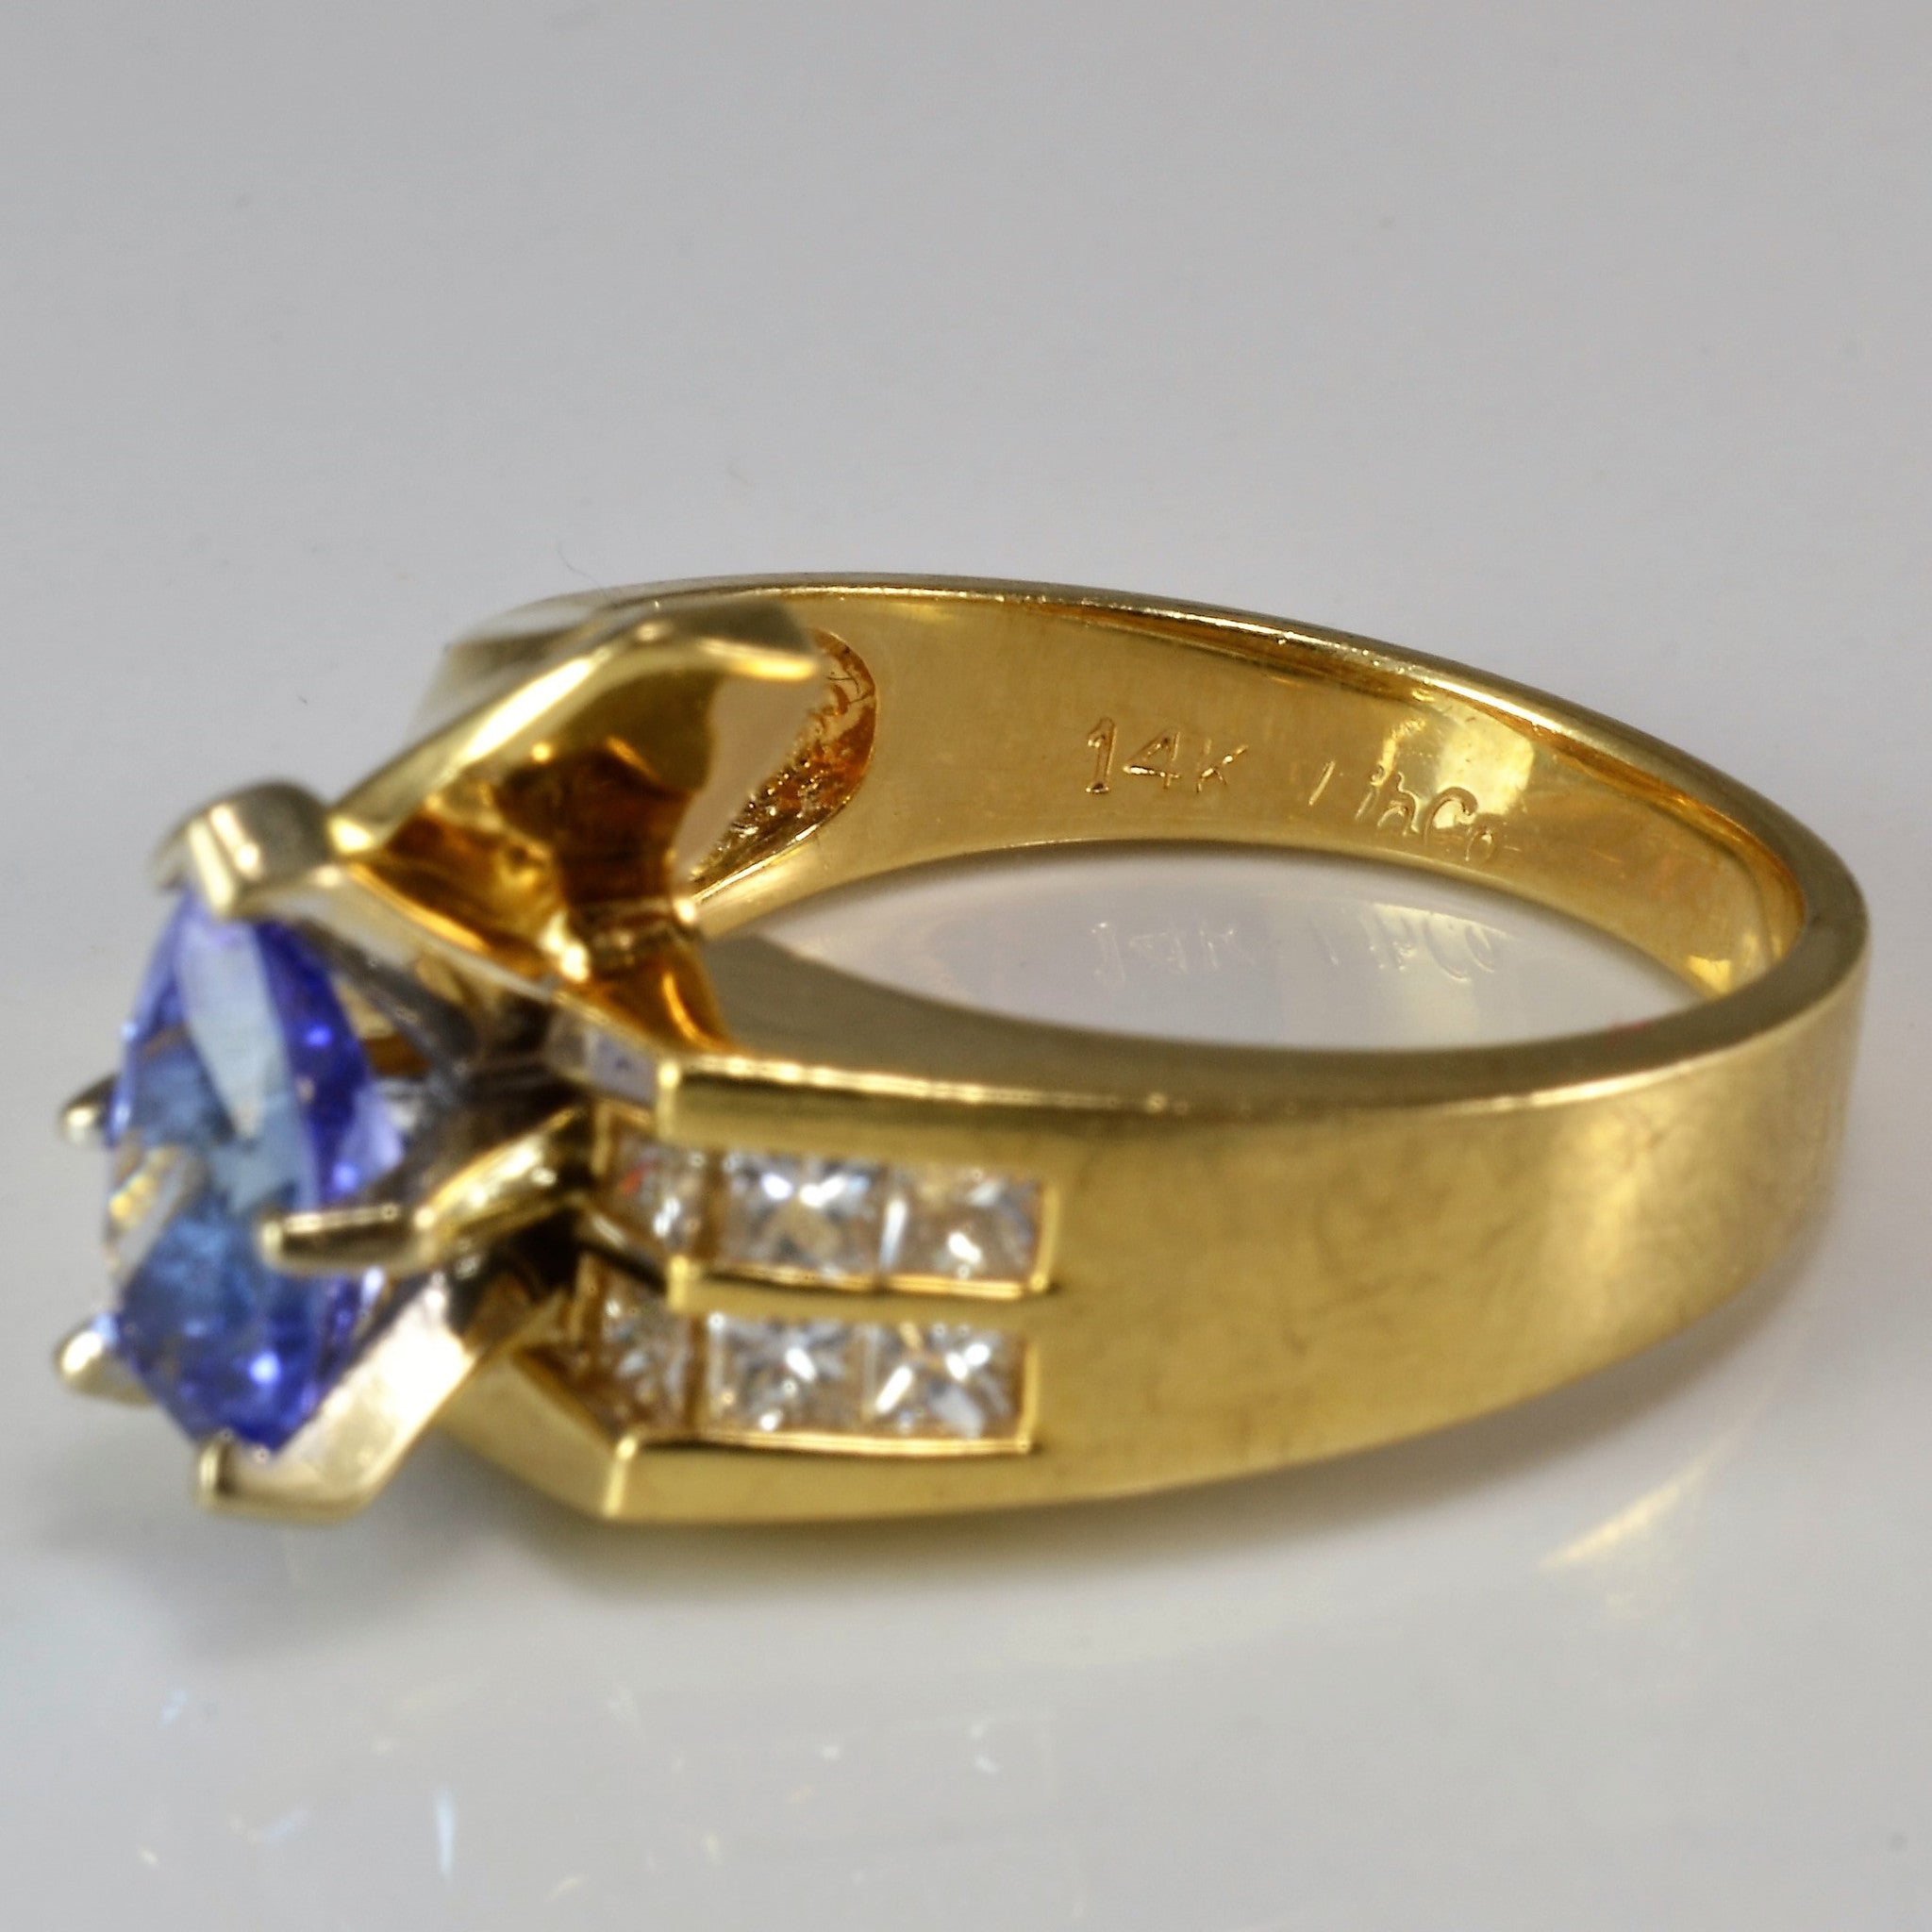 ring grahl design igs permission cut with tanzanite princess used and white diamonds violet society article gem yellow j guide international ct buying